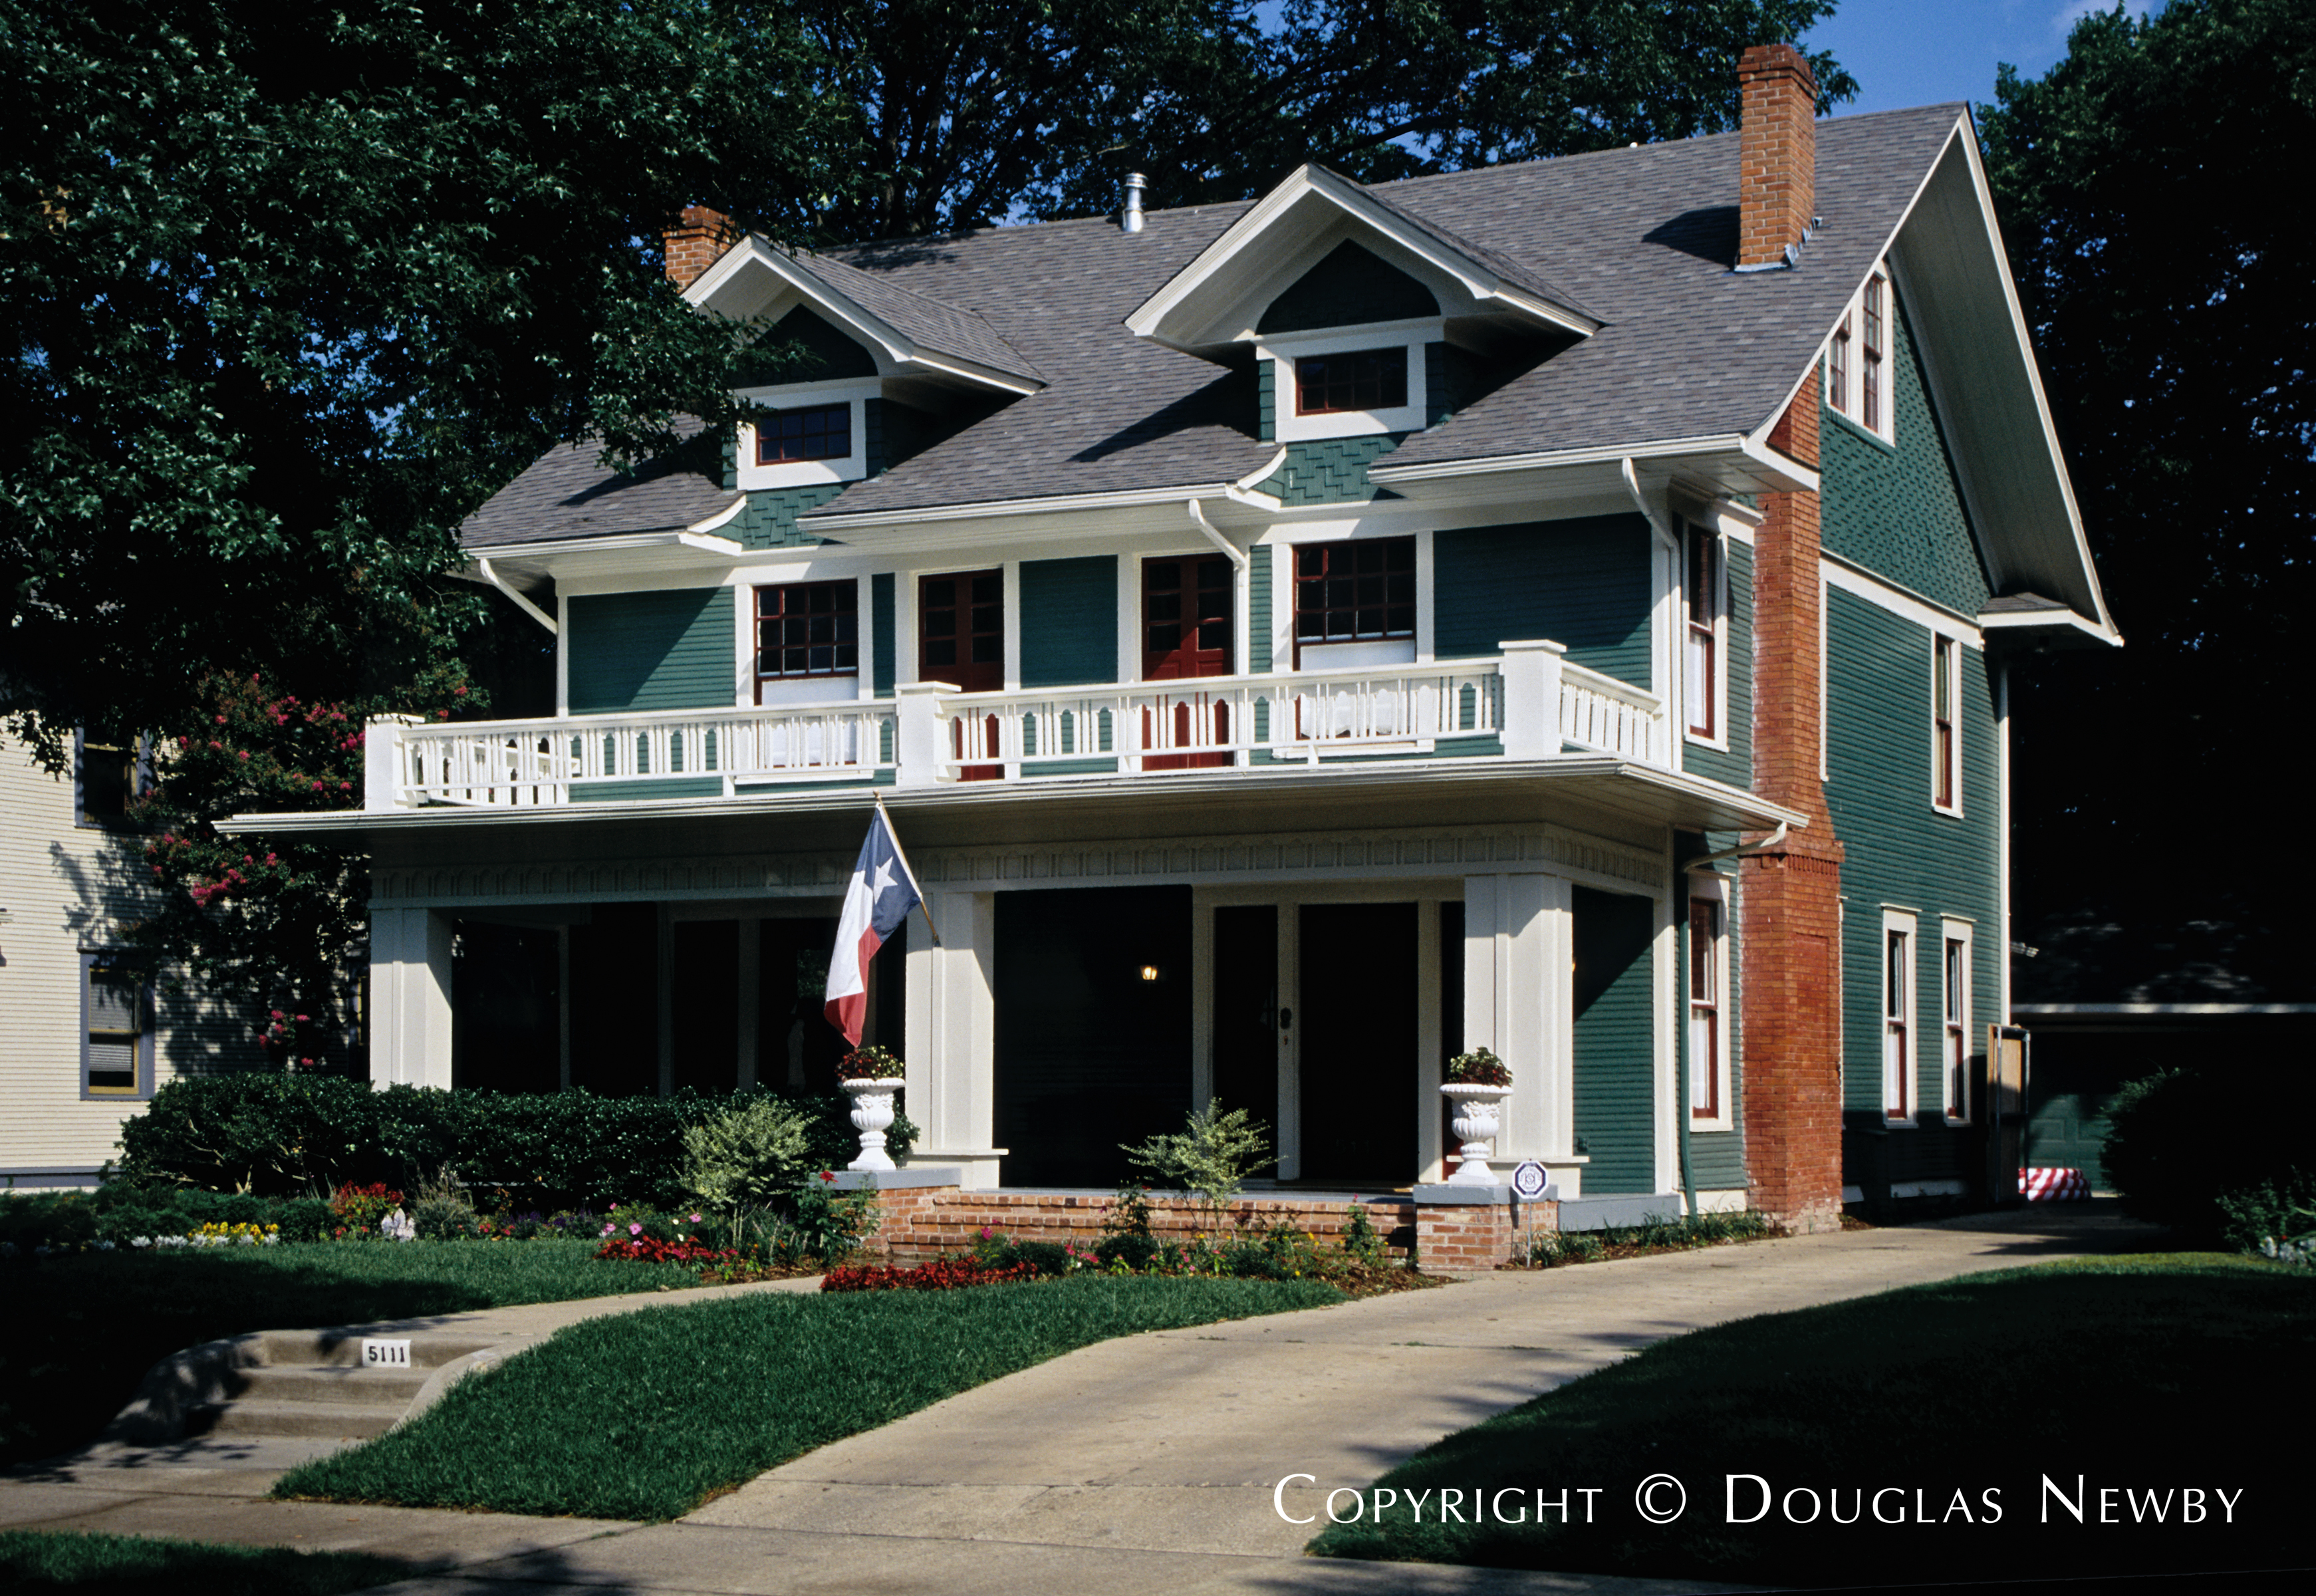 dallas eclectic architecture the first prairie style home frank lloyd wright designed was in river forest illinois in 1893 this winslow house is much closer in mass and style than